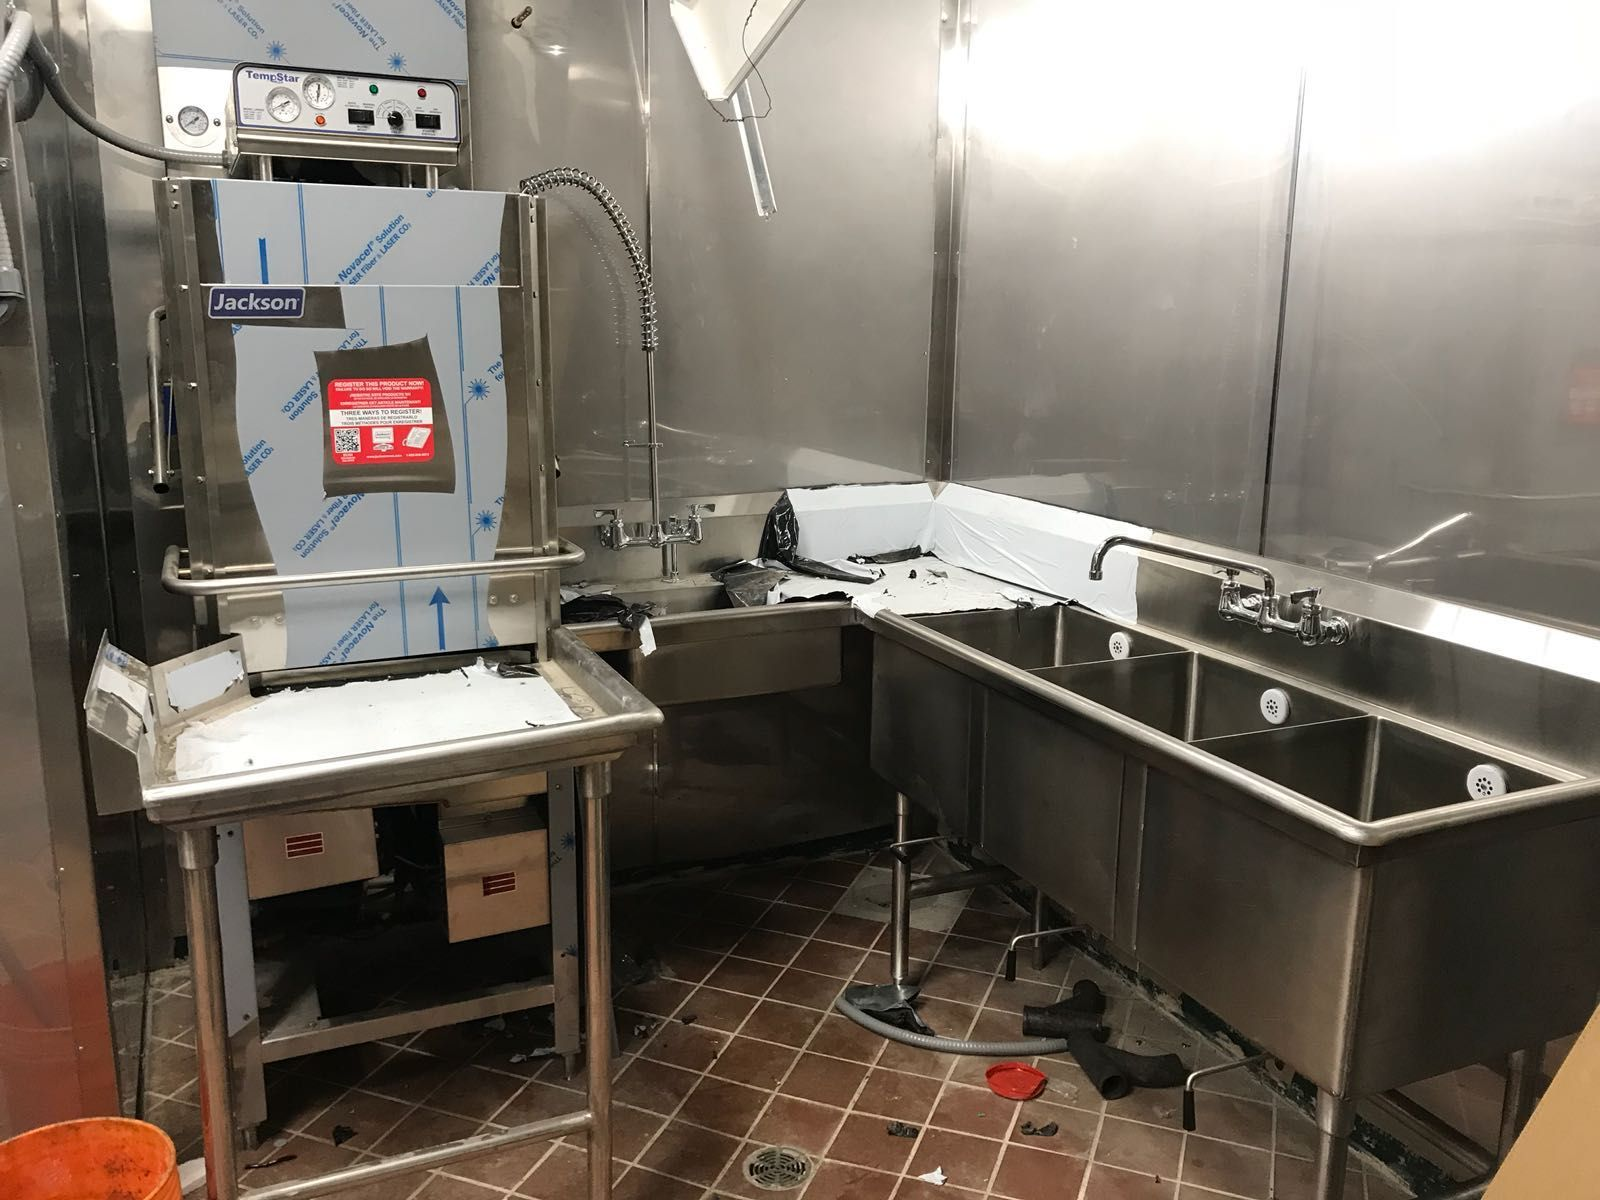 A Jackson Dishwasher And A 3 Compartment Sink Https Www Culinarydepotinc Com Commercial Si Commercial Kitchen Equipment Restaurant Equipment Commercial Sink